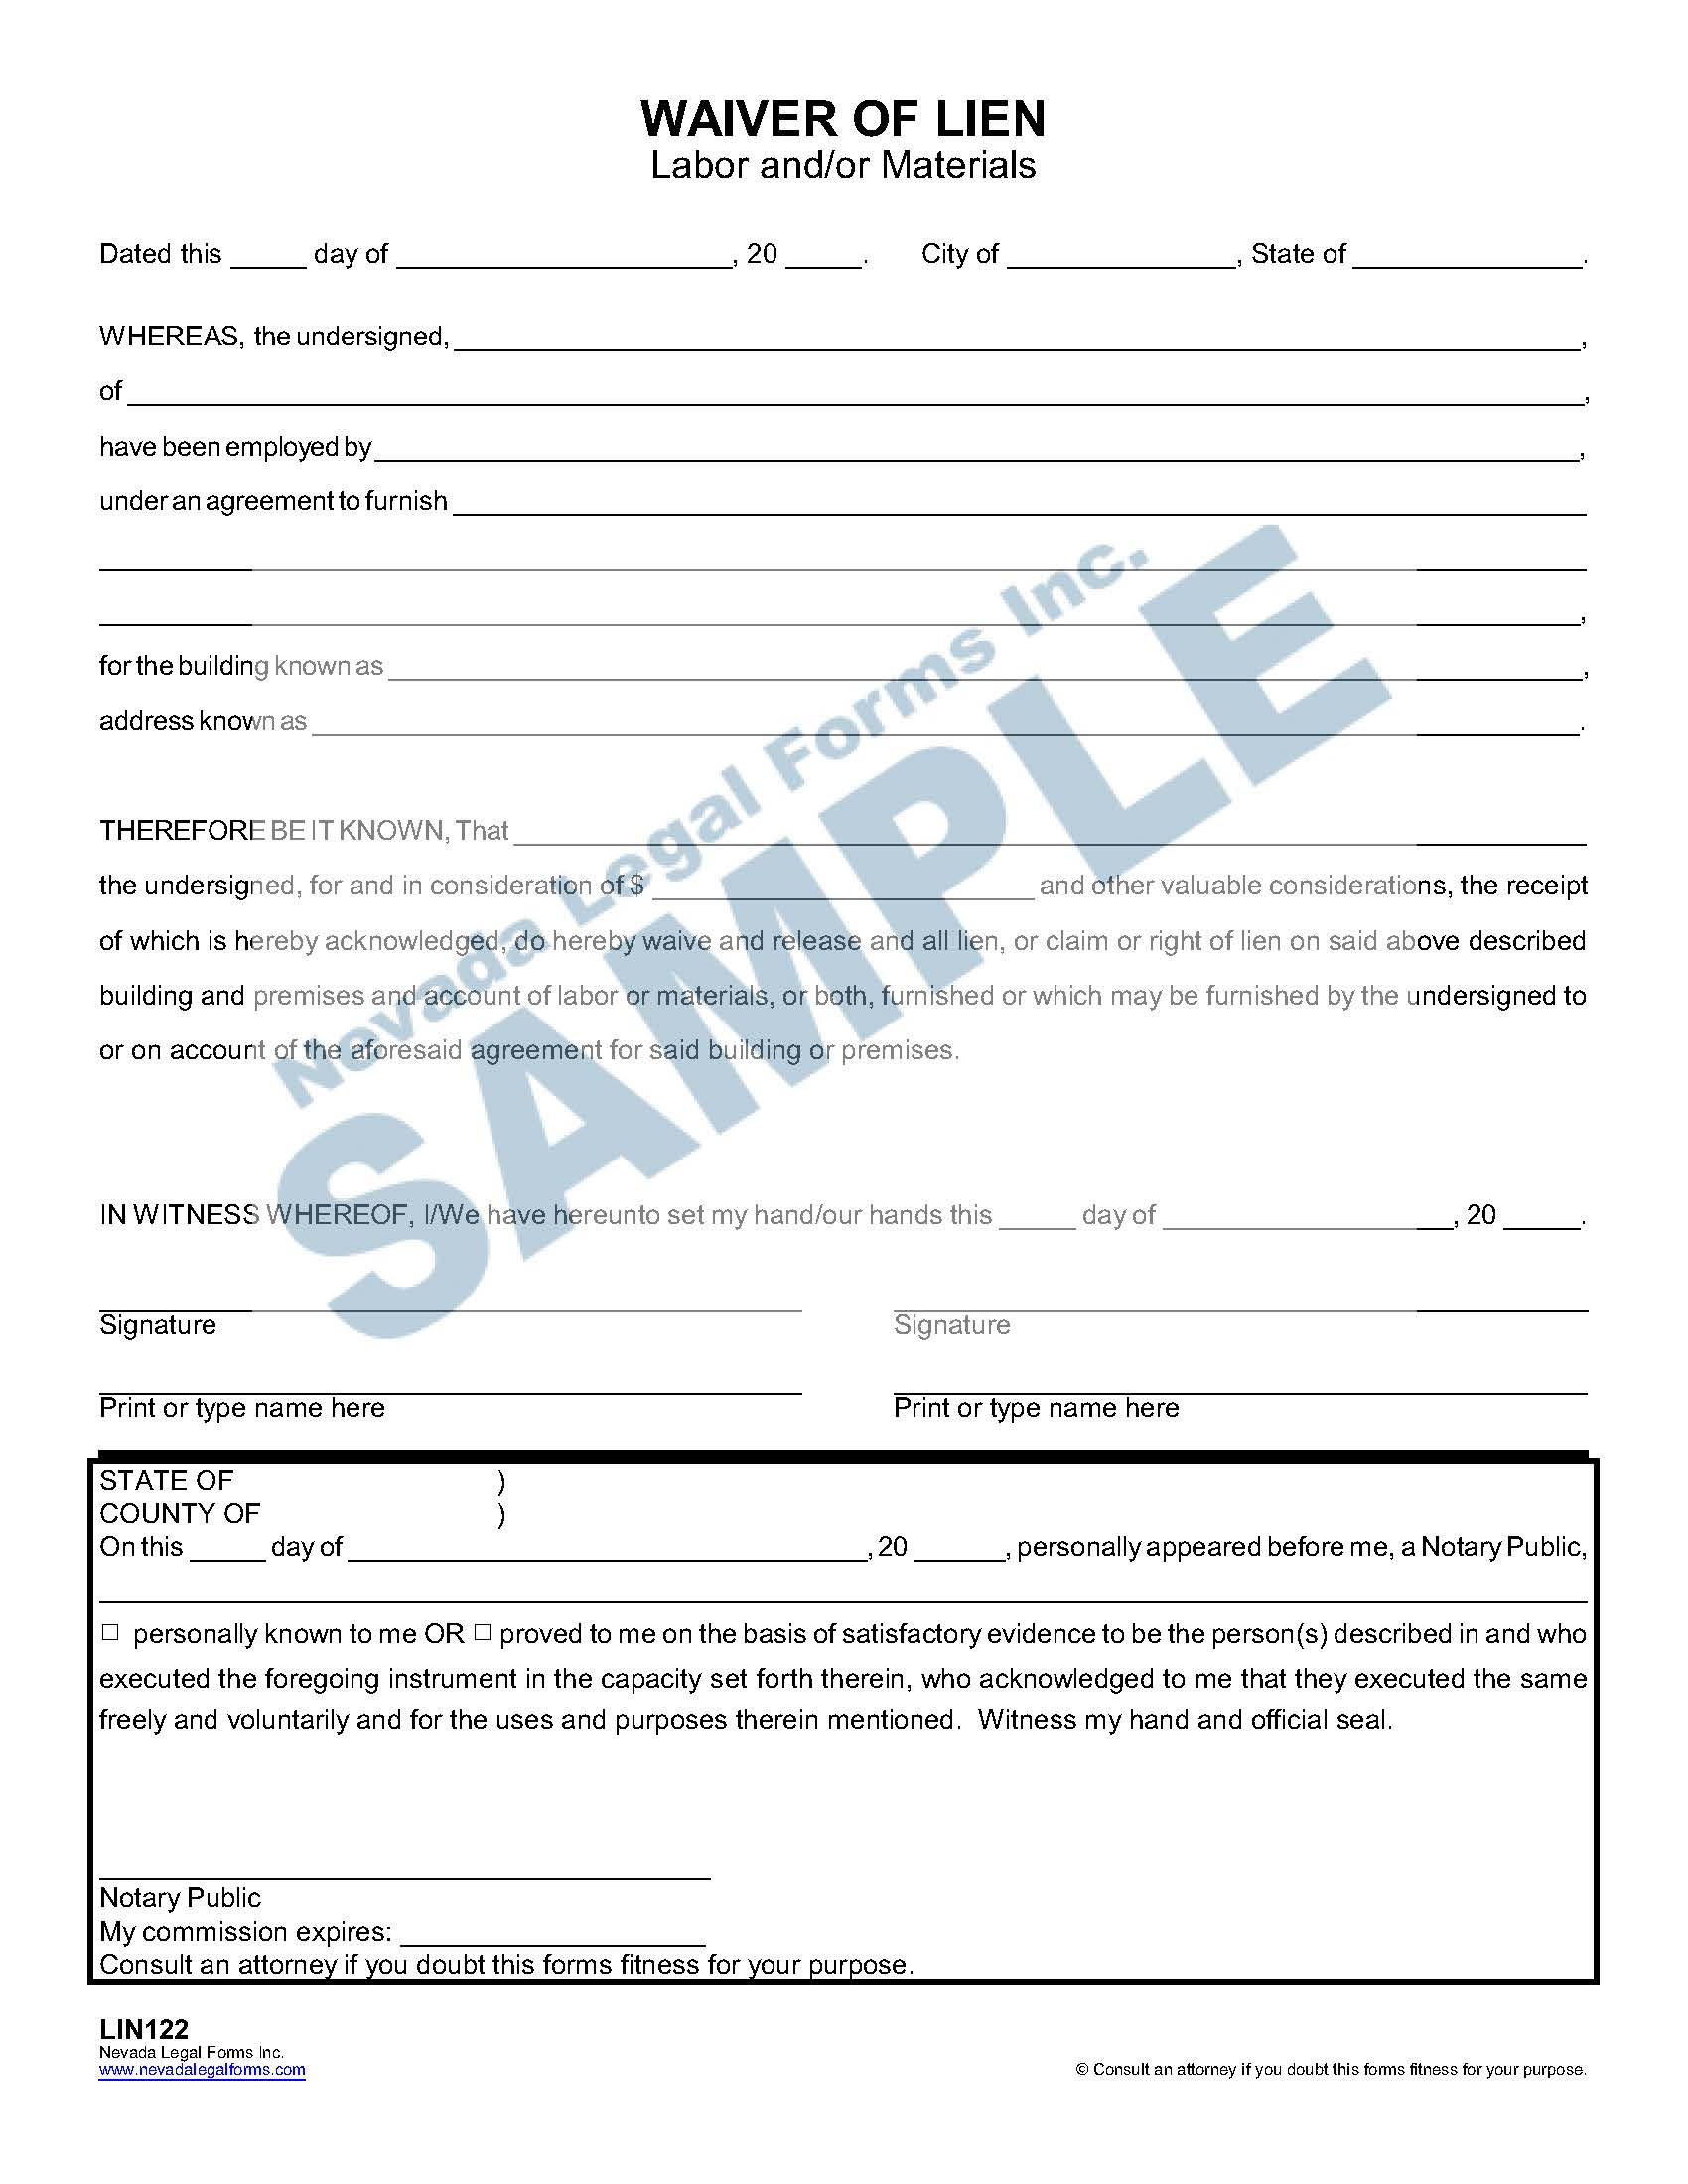 Waiver Of Lien Labor And Or Materials